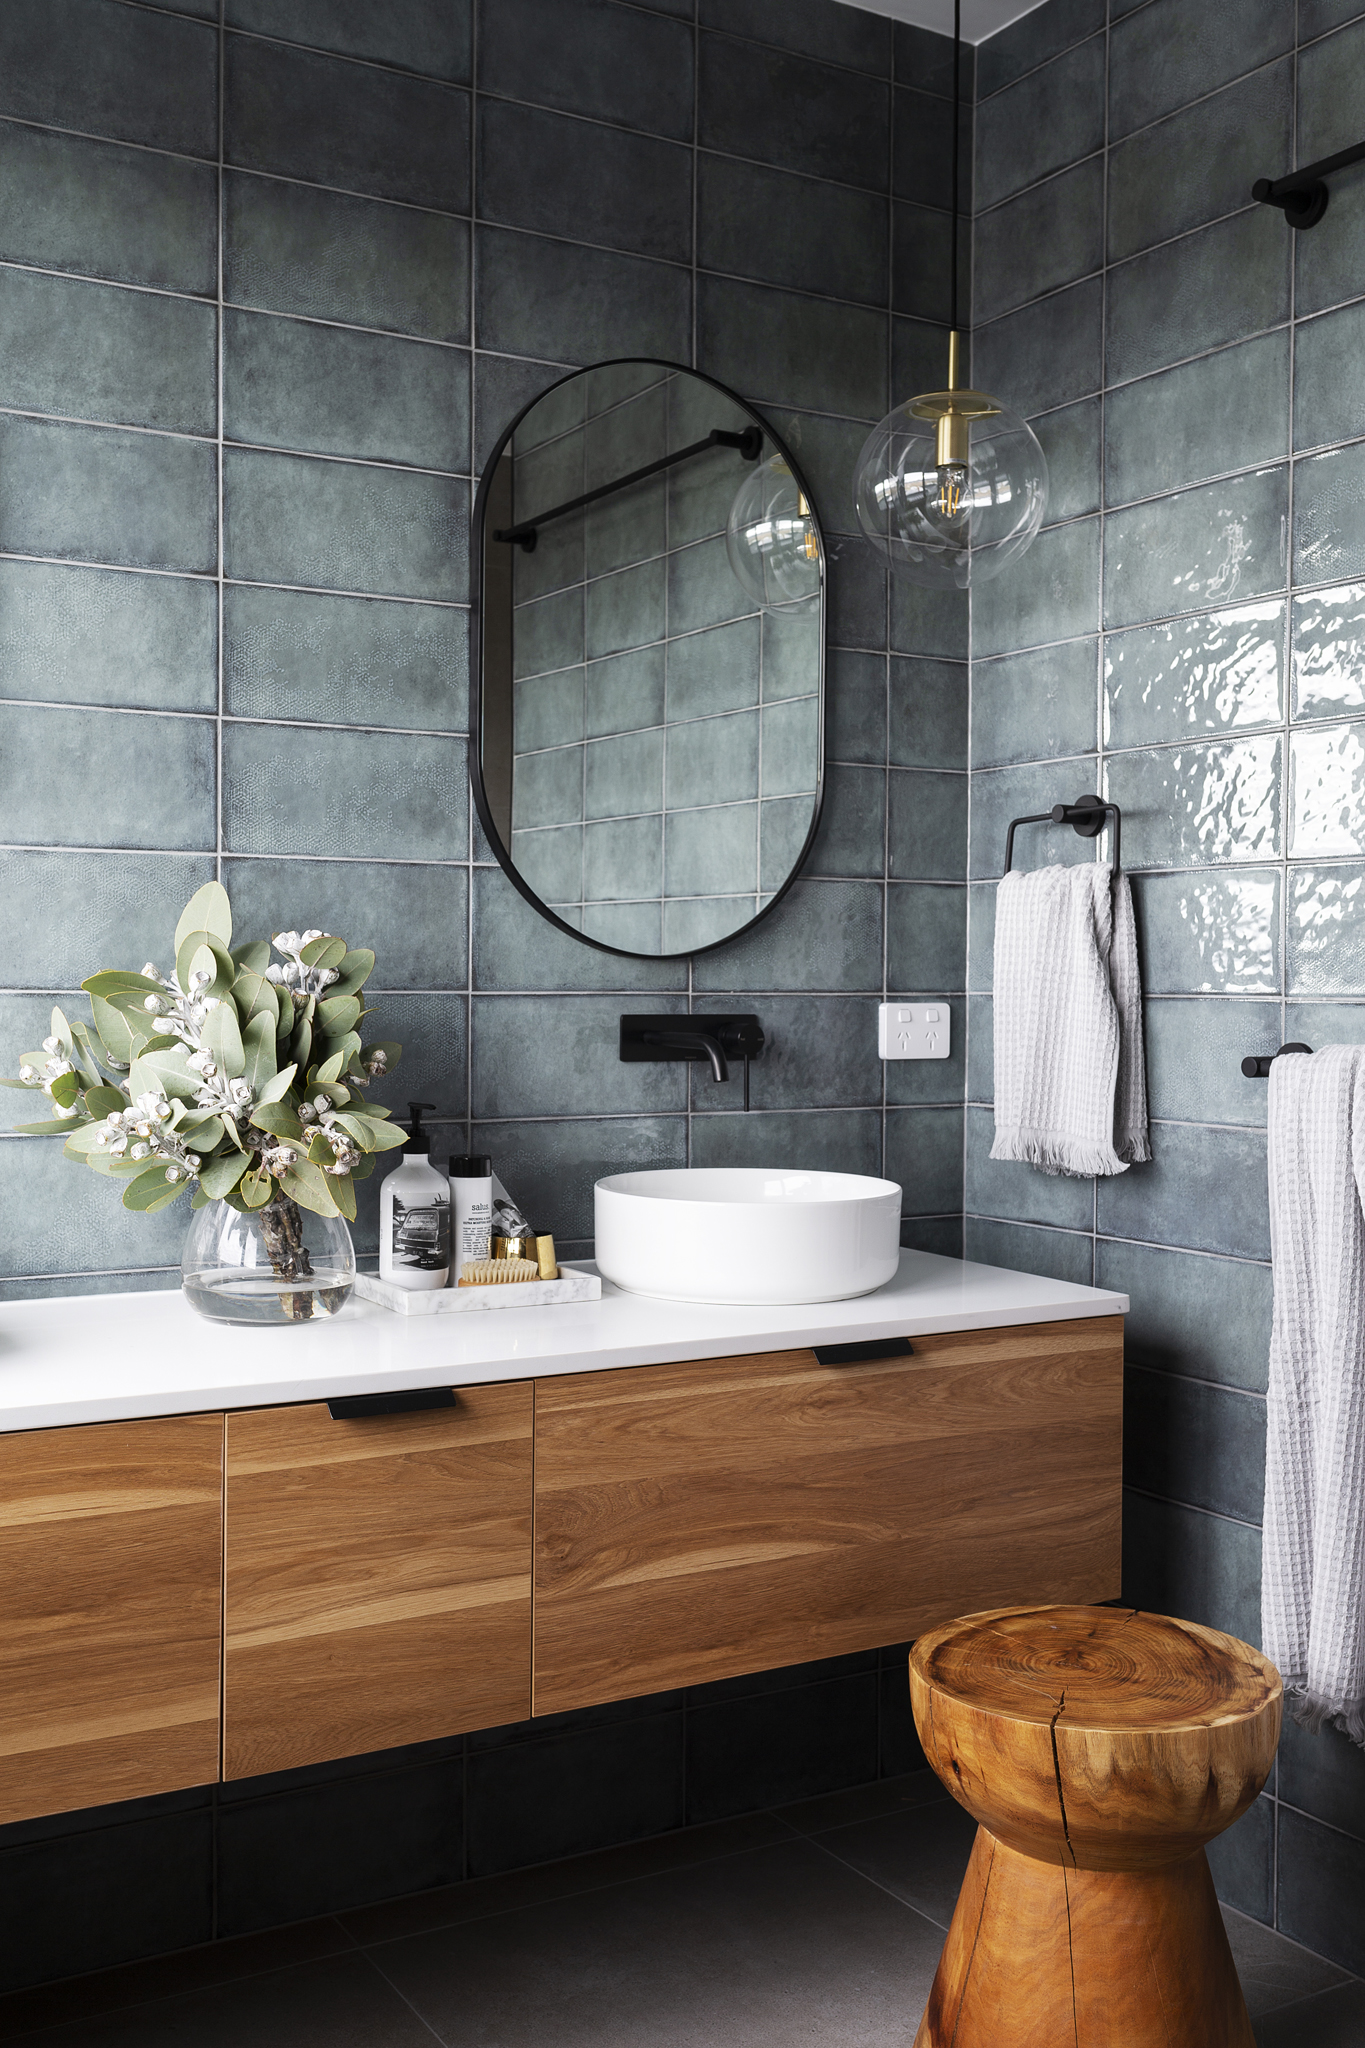 Interior design  Studio Black Interiors /  Photography  Adam McGrath /  Build  Homes by Howe  Featuring Highgrove Bathroom's Eden timber wall hung vanity